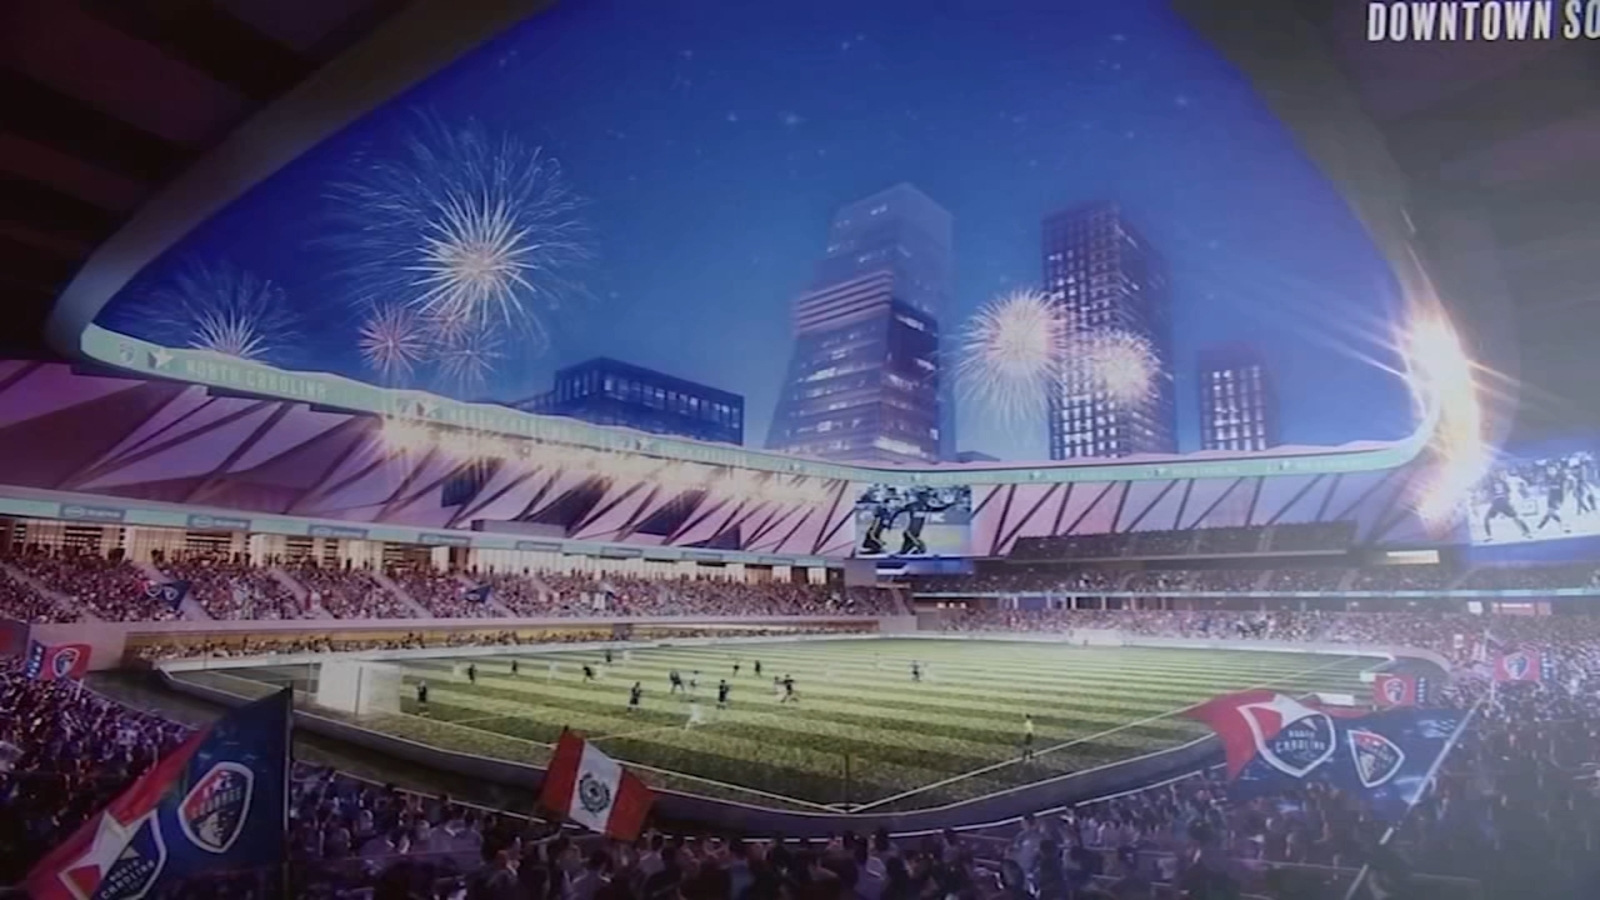 NCFC, NC Courage CEO believes stadium is needed for Raleigh to become a 'great city'